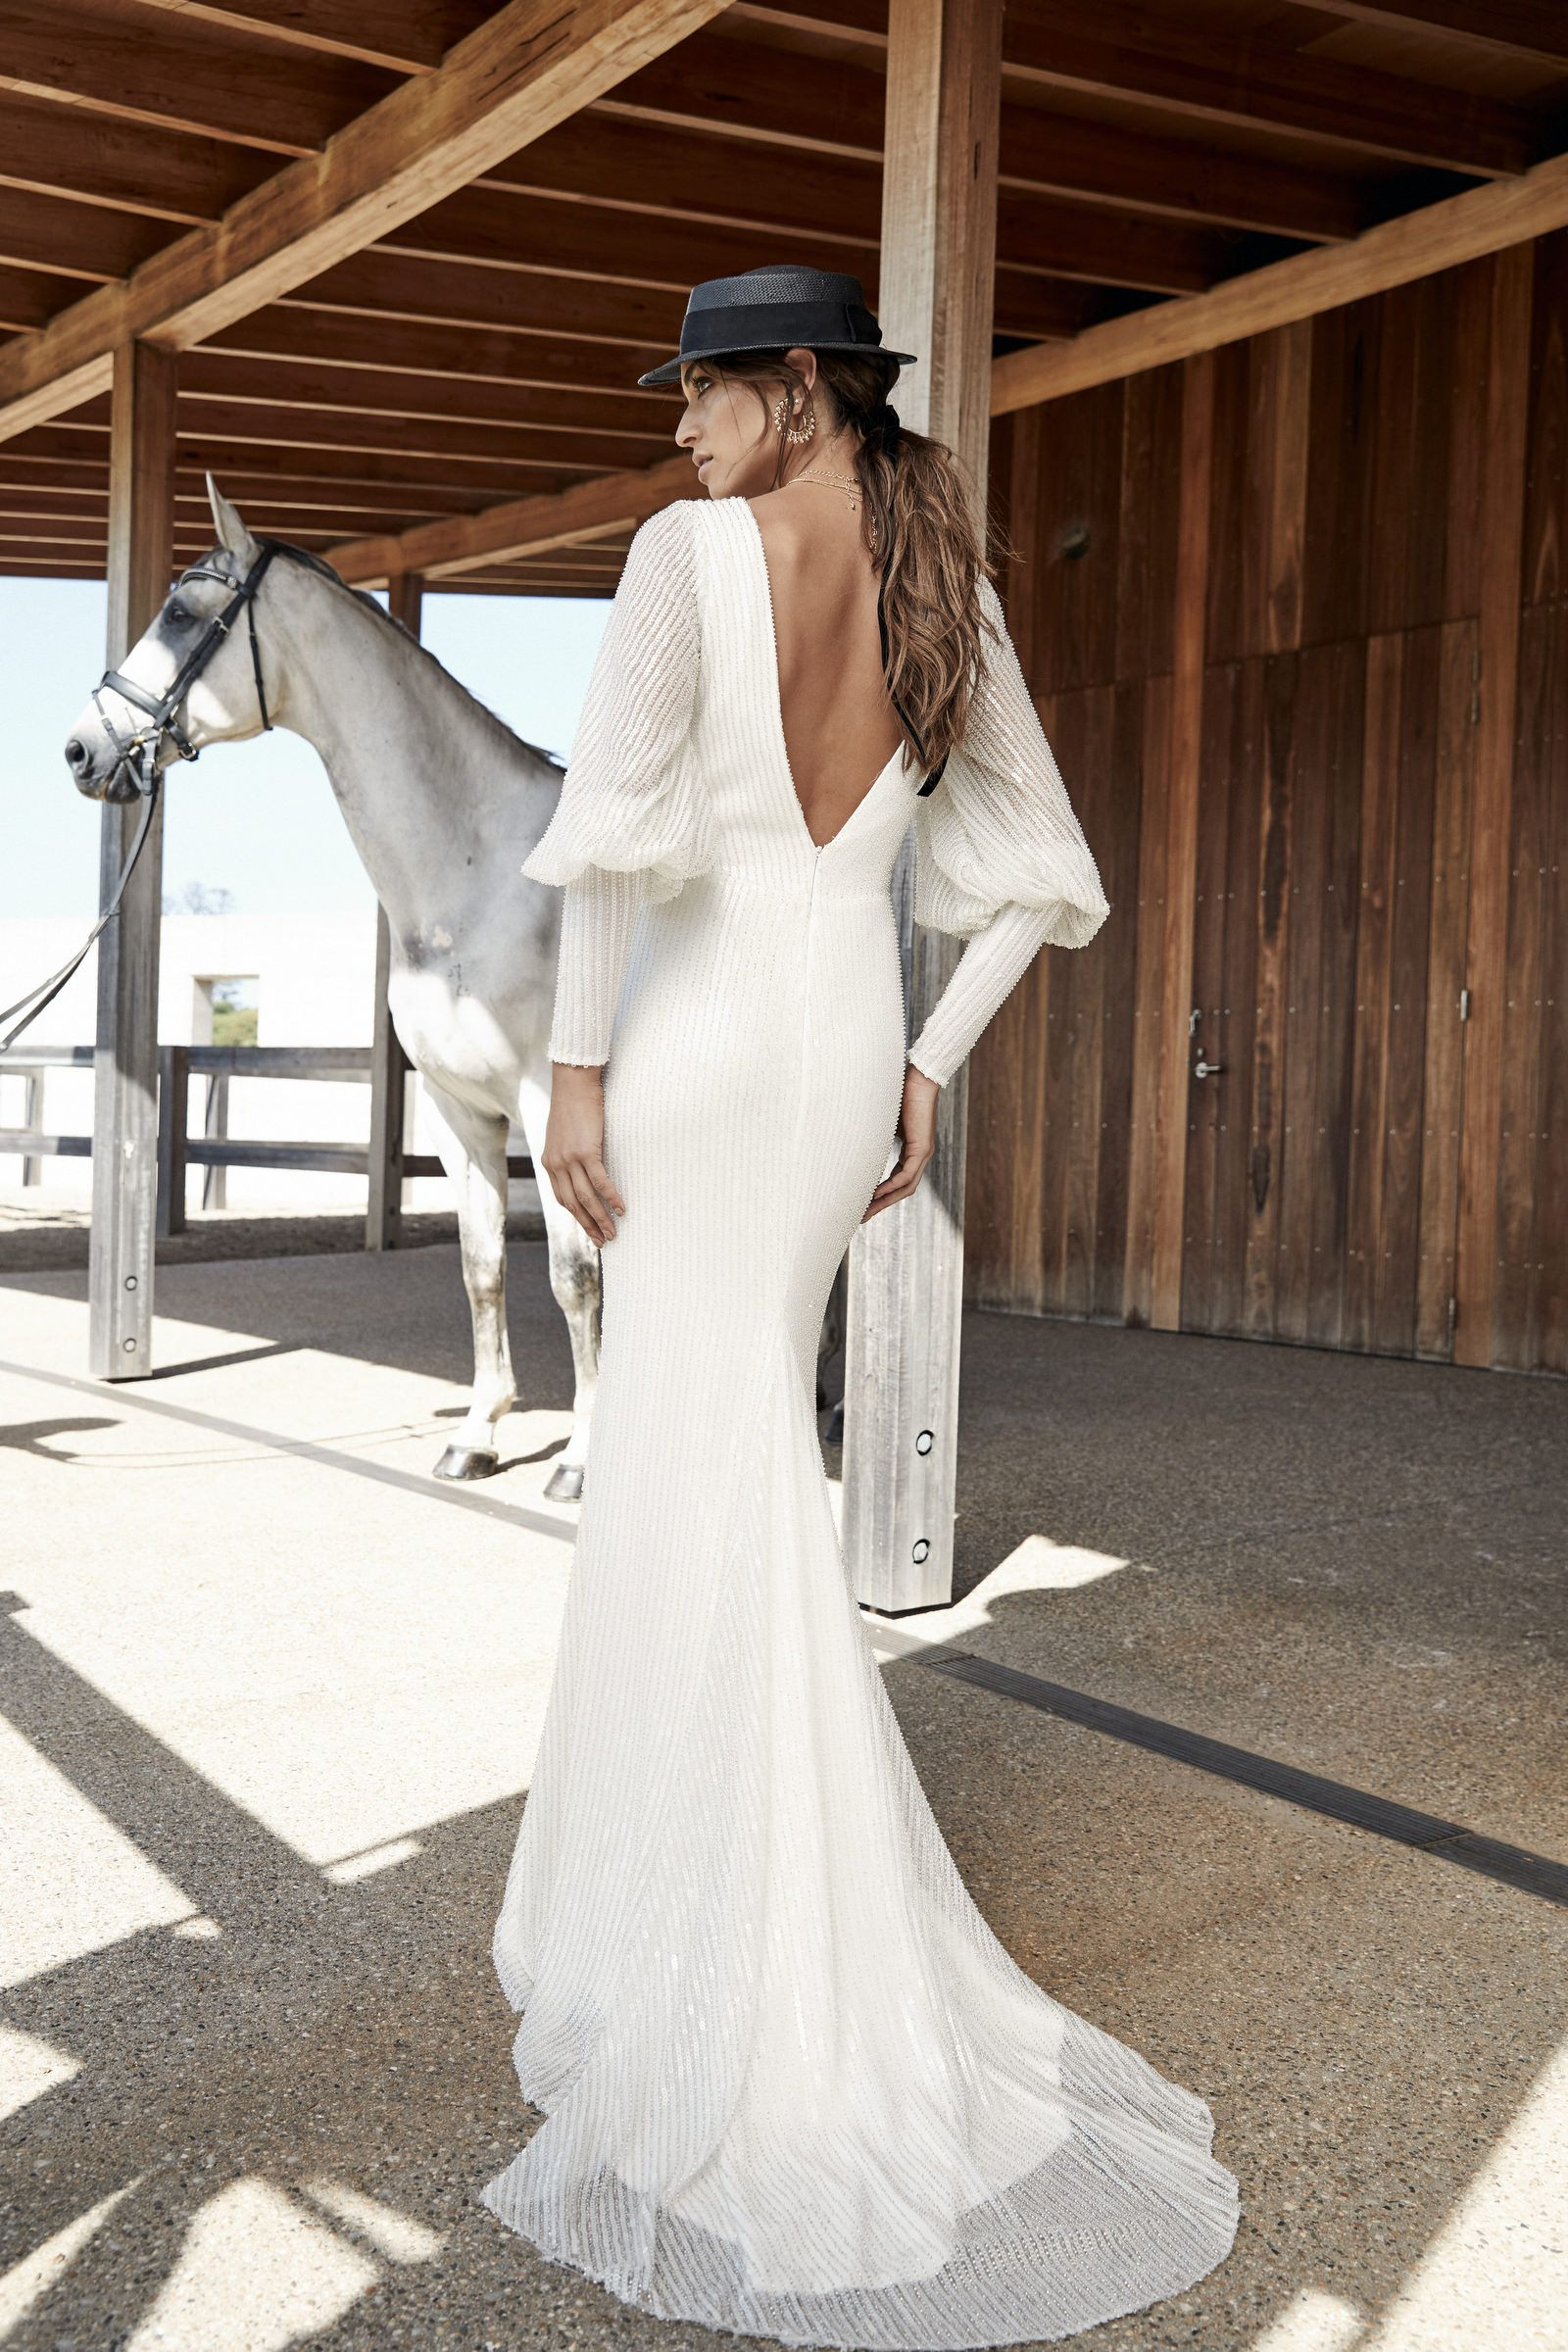 New Reign Welcome To A New Era In Bridal Just Released Collection